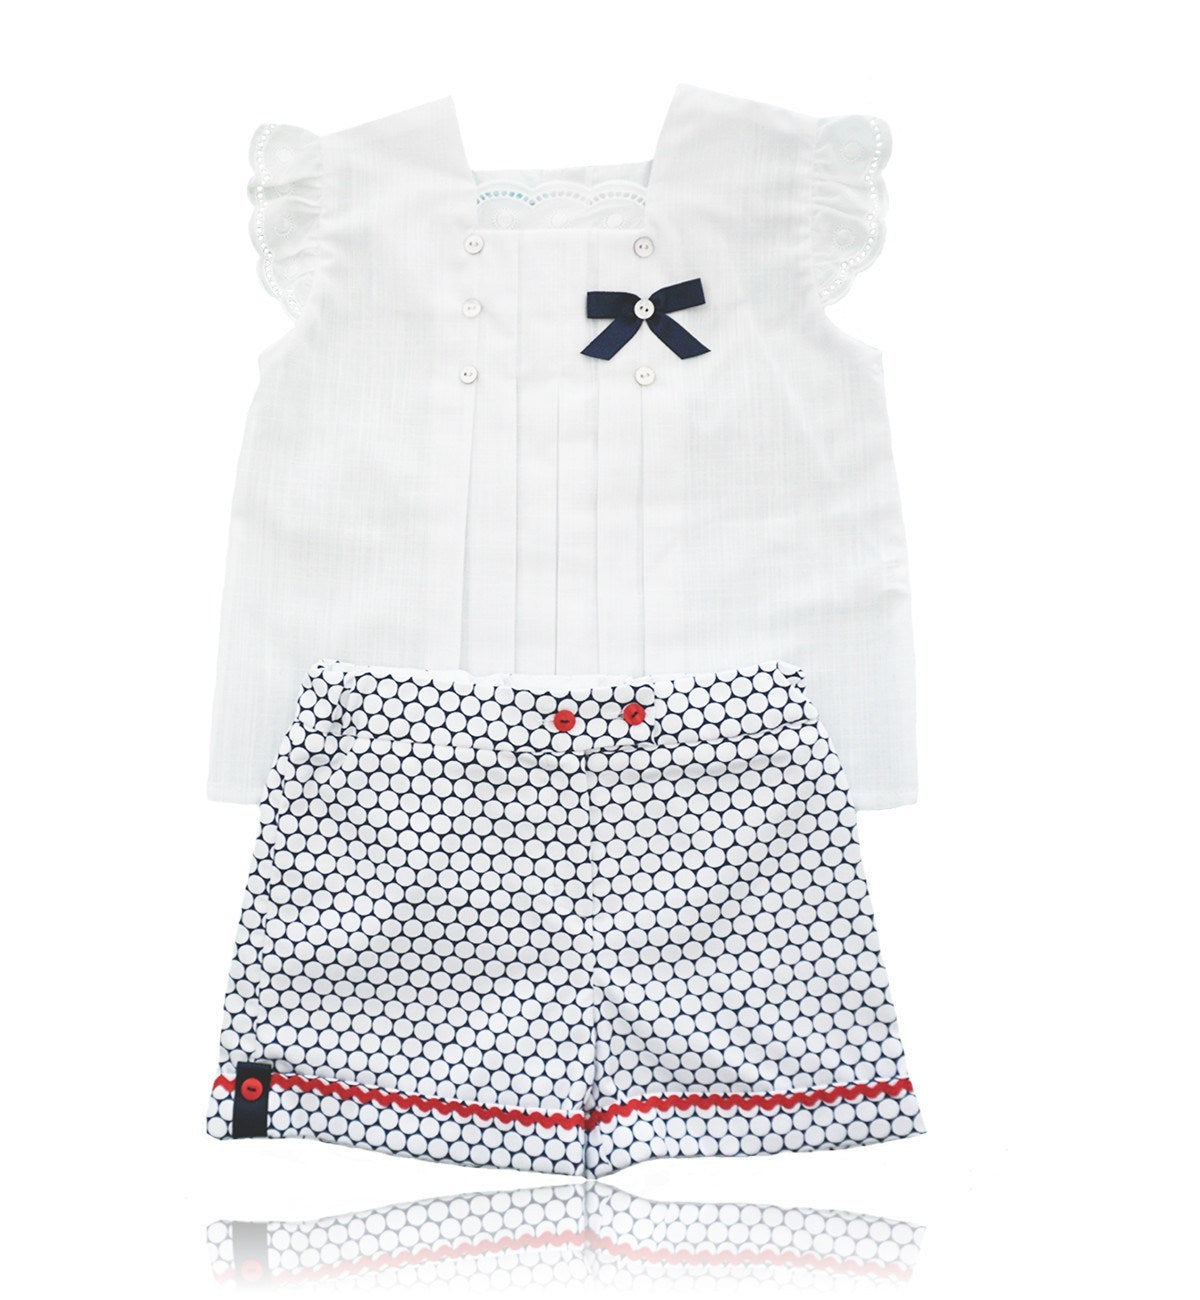 Spanish baby clothes | baby Blouse & Short set | Blouse & short set |babymaC  - 1